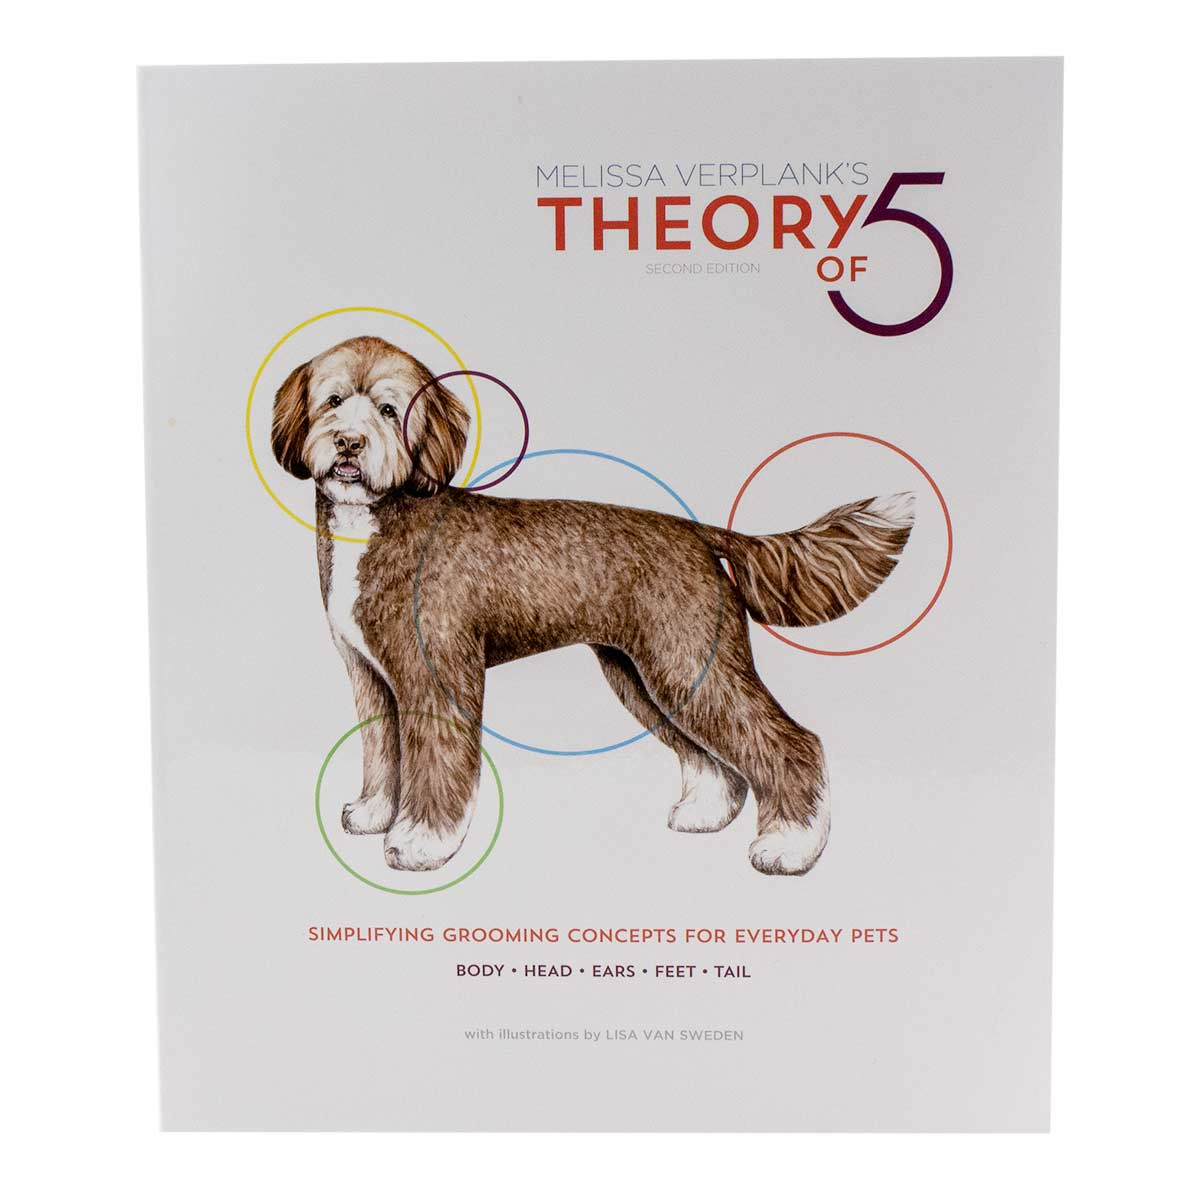 The Theory of Five: Simplifying Basic Pet Grooming Concepts for Every Day Pets by Melissa Verplank CMG